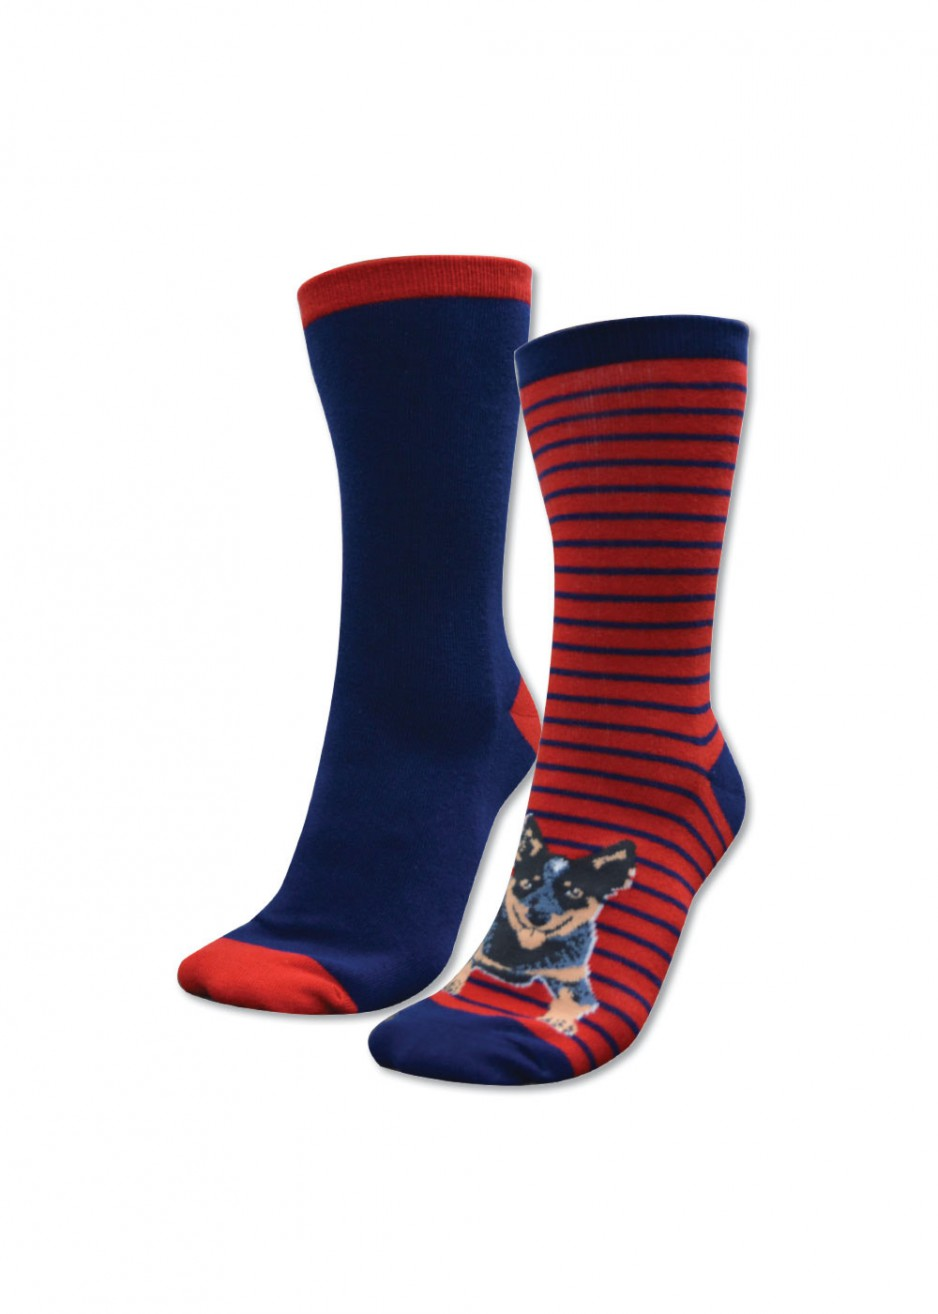 HOMESTEAD SOCKS - TWIN PACK